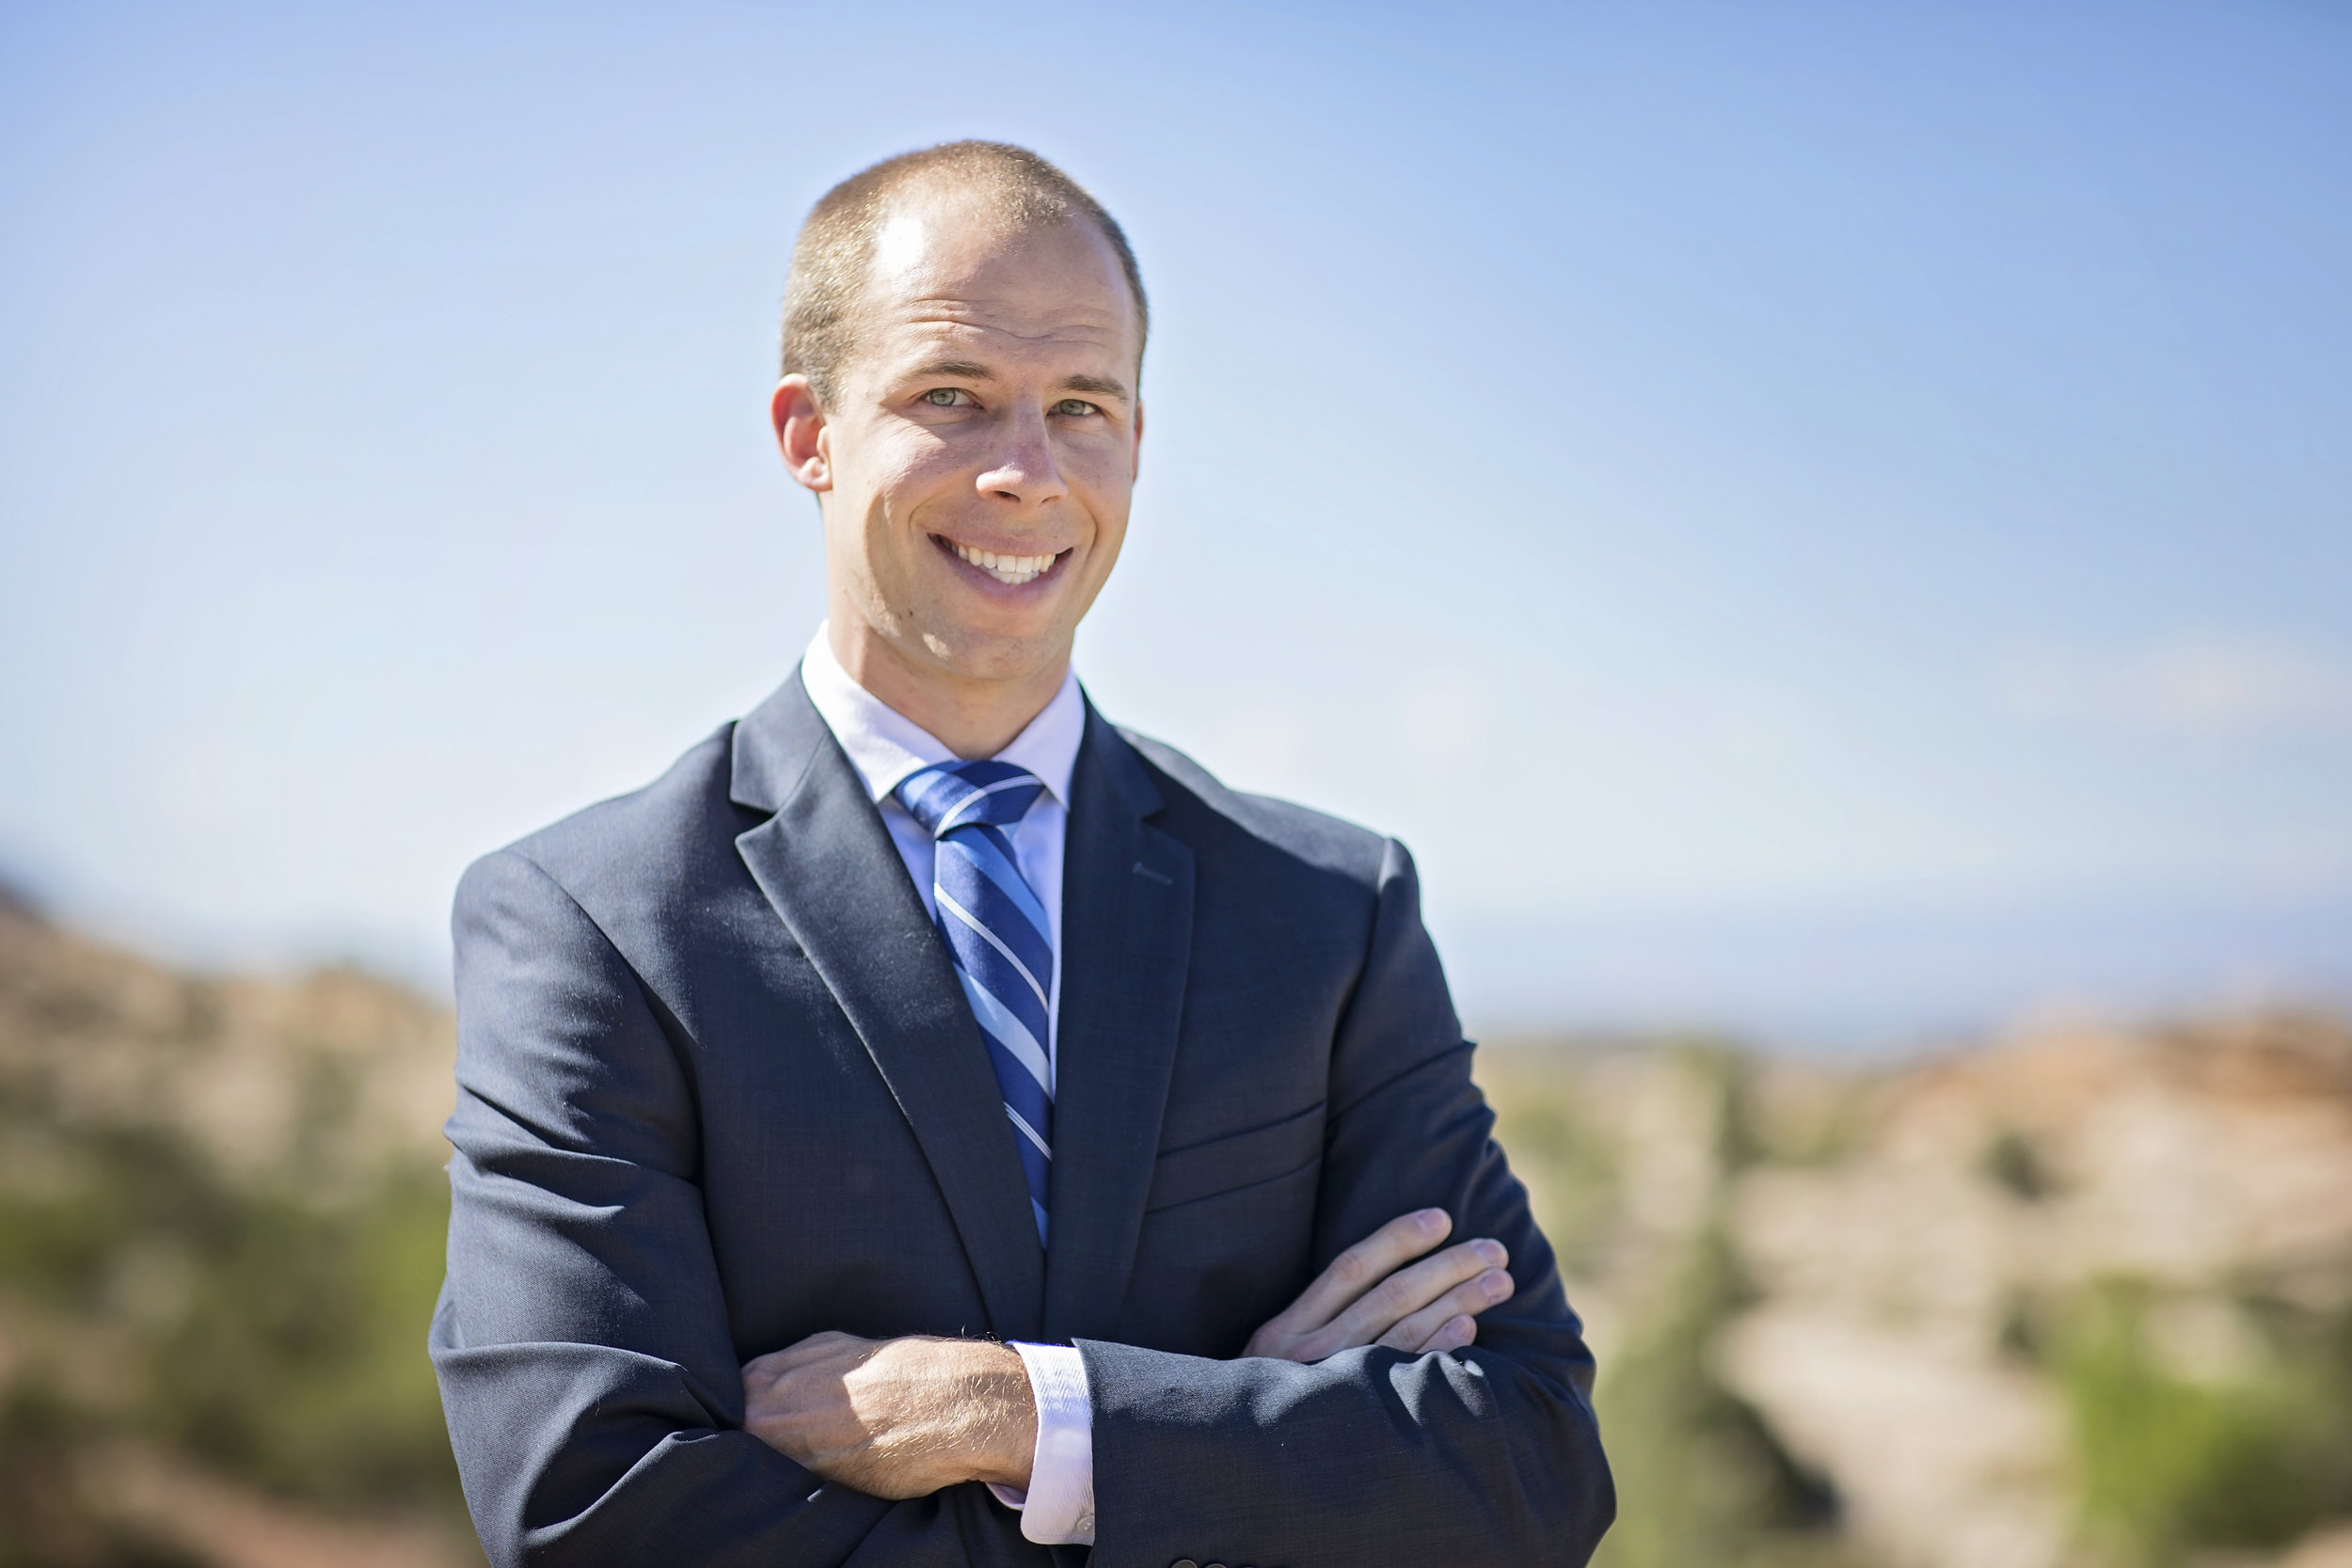 Financial adviser headshot with Grand Junction behind